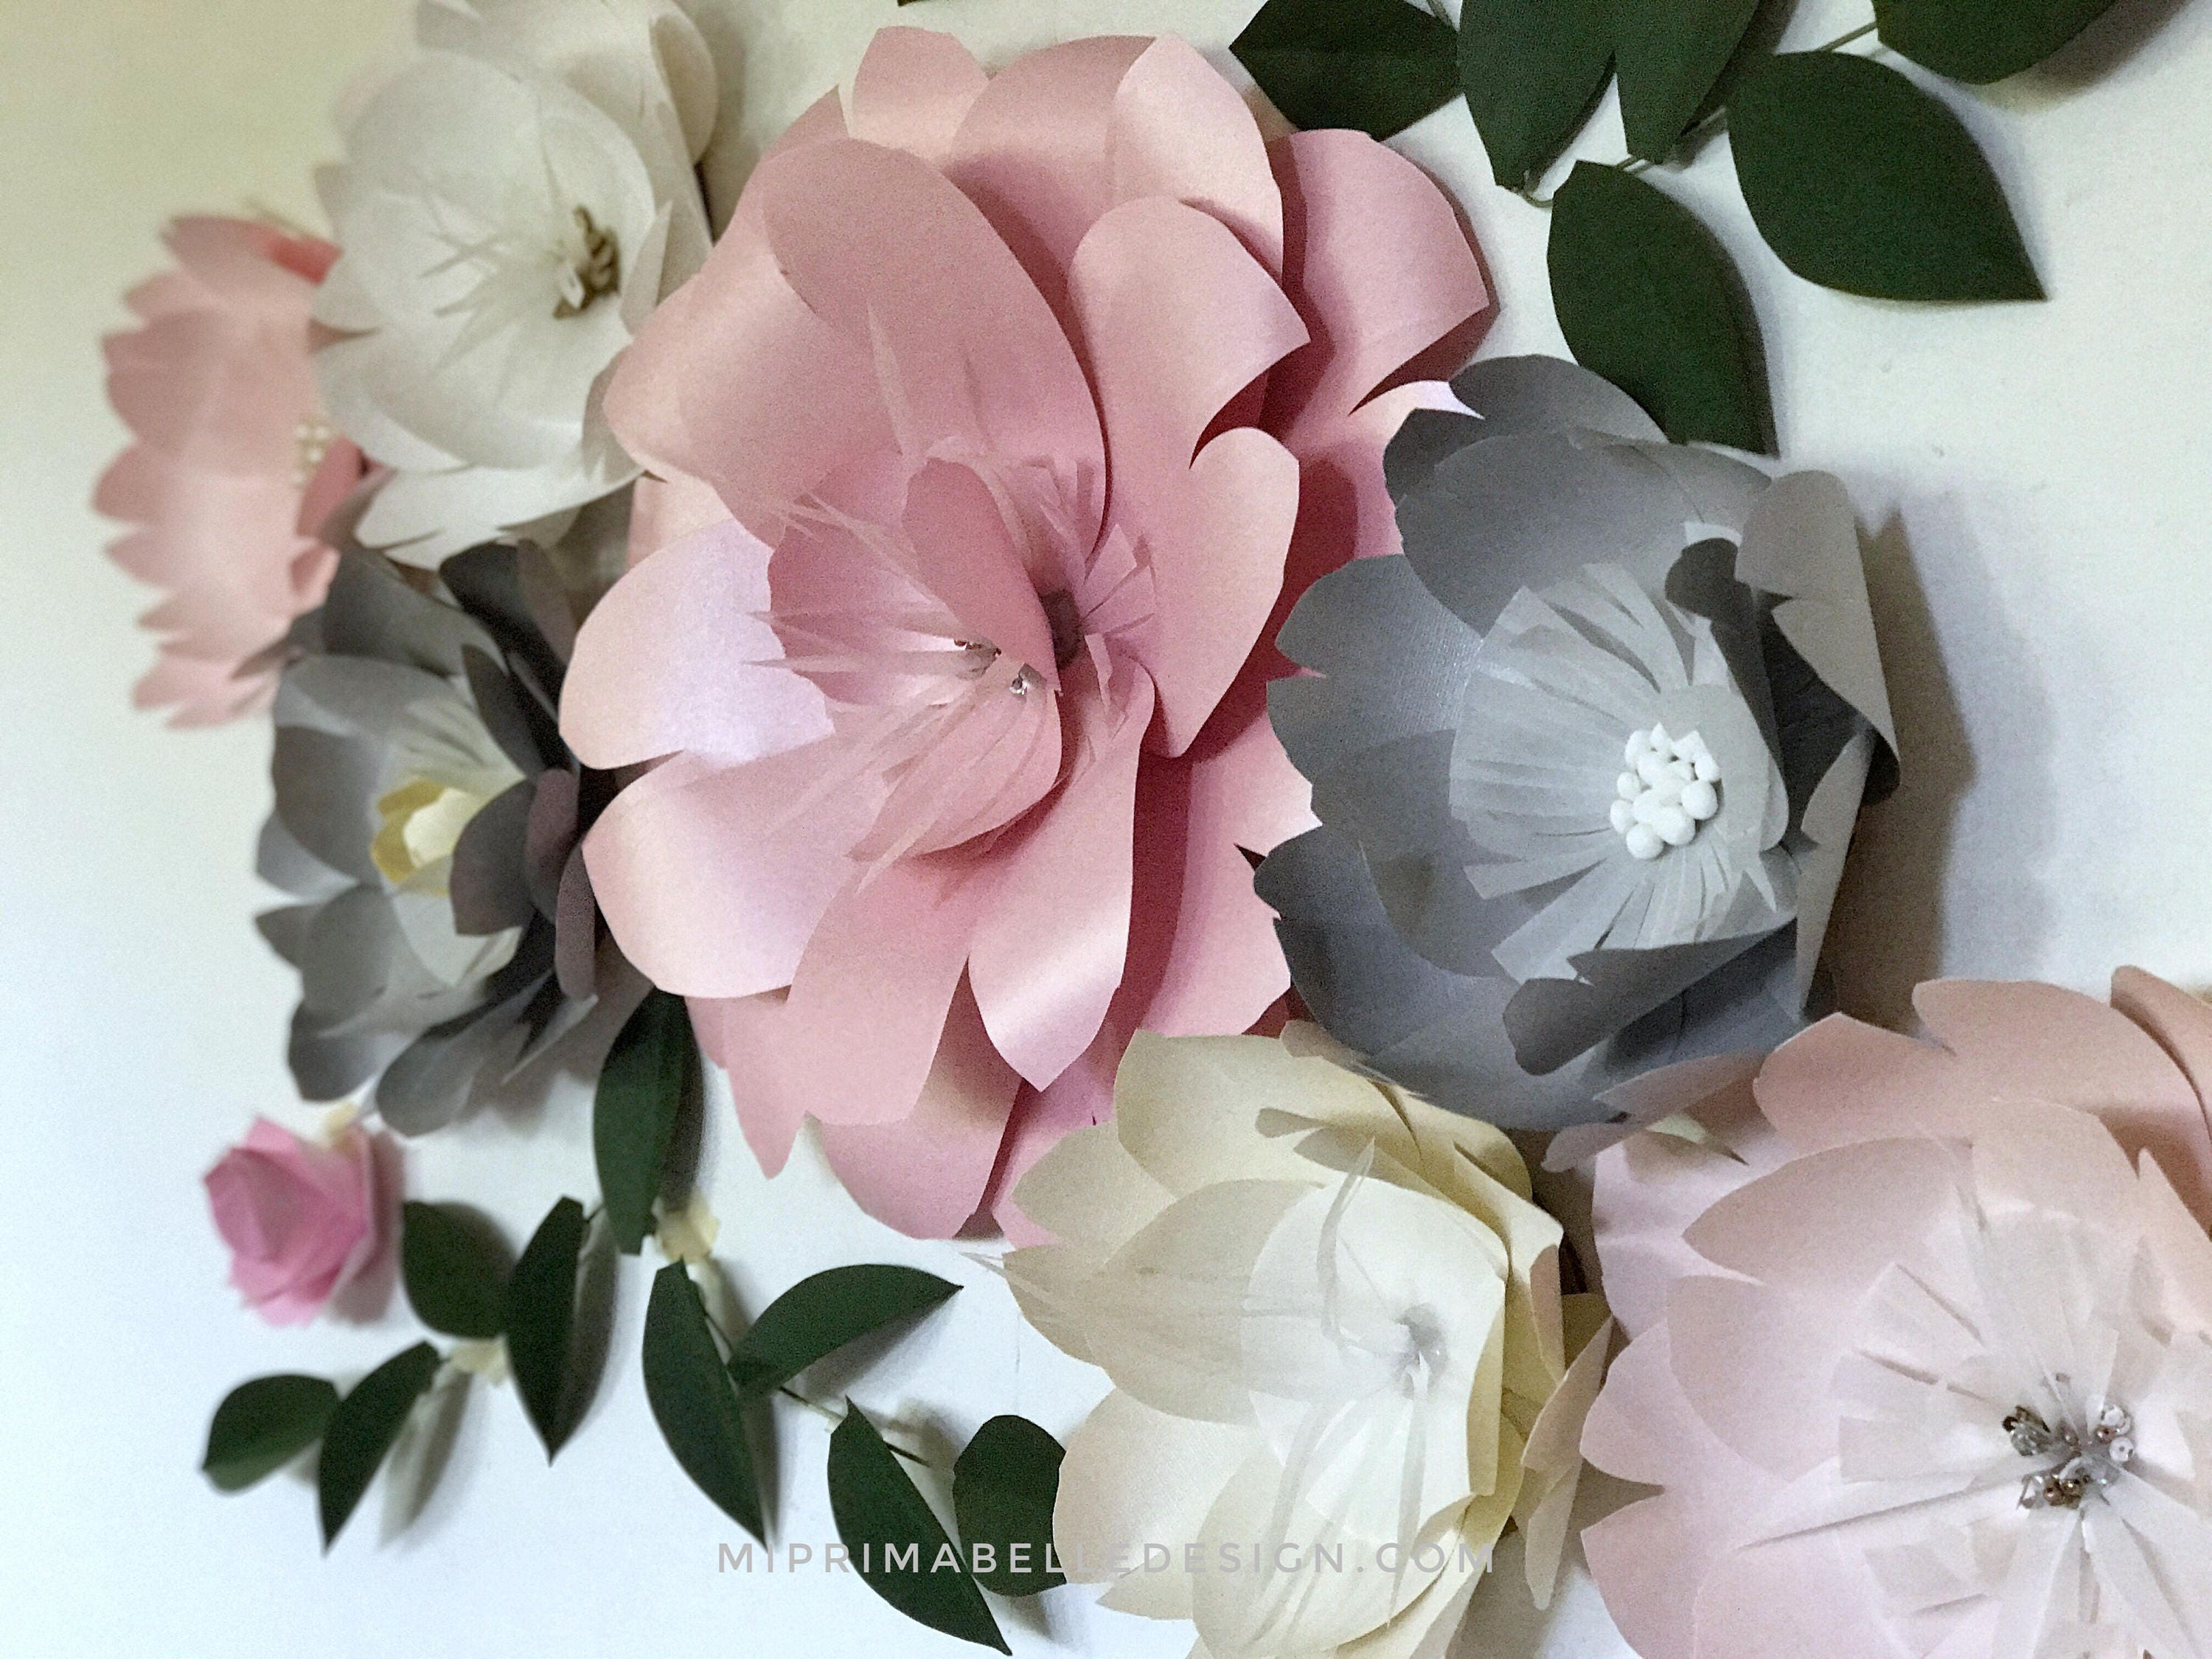 Paper flowers wall decor paper flower wall for baby girl nursery paper flowers wall decor paper flower wall for baby girl nursery bedroom wall hanging flower arrangements giant pink paper flowers amipublicfo Choice Image